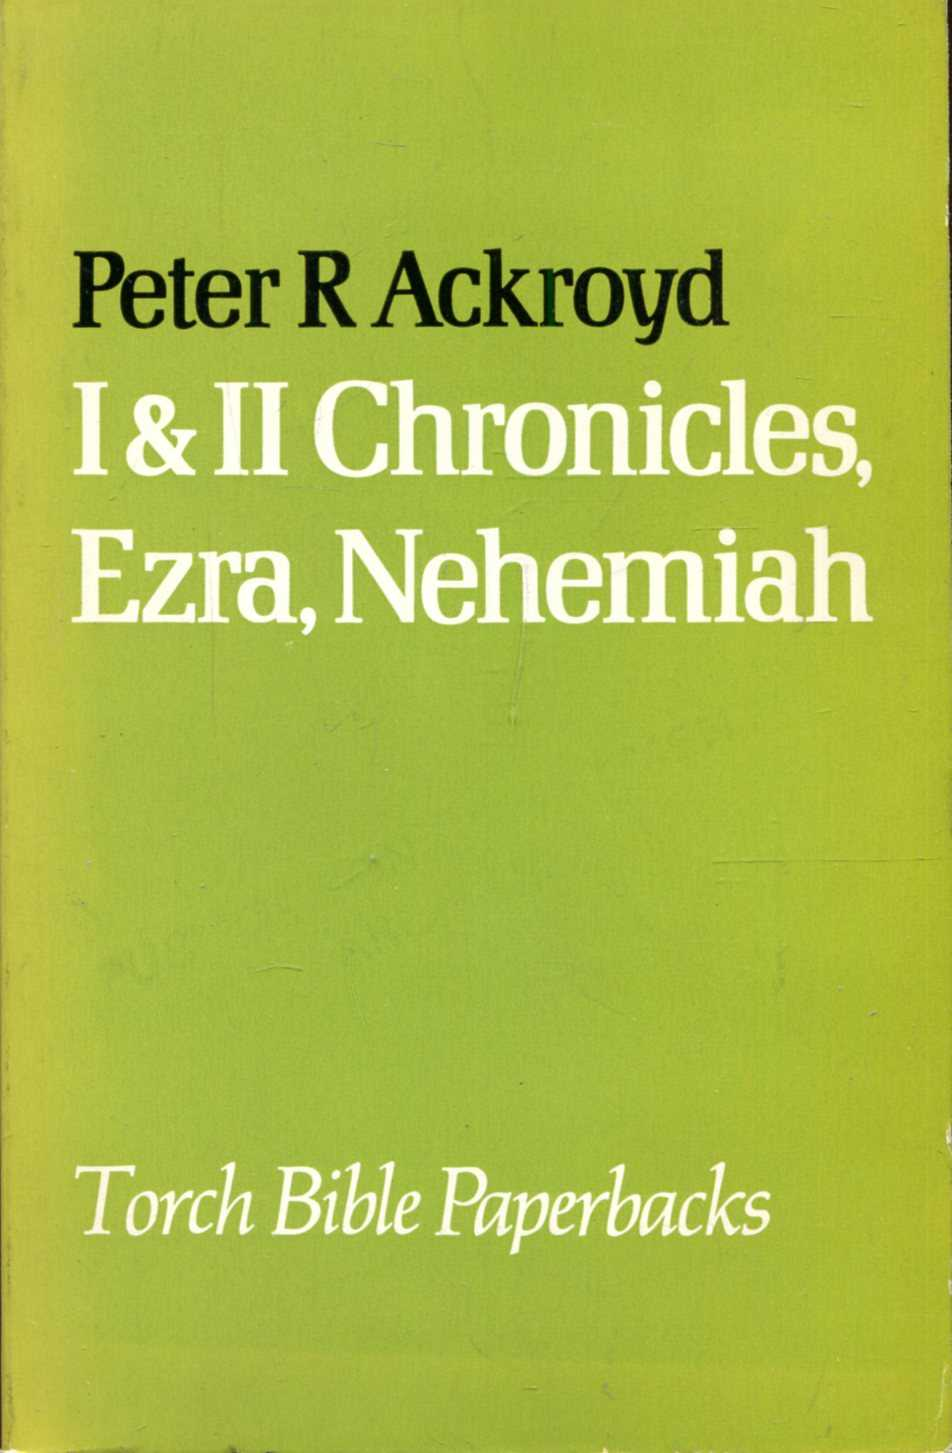 Image for I & II Chronicles, Ezra, Nehemiah (The Torch Bible Commentaries)